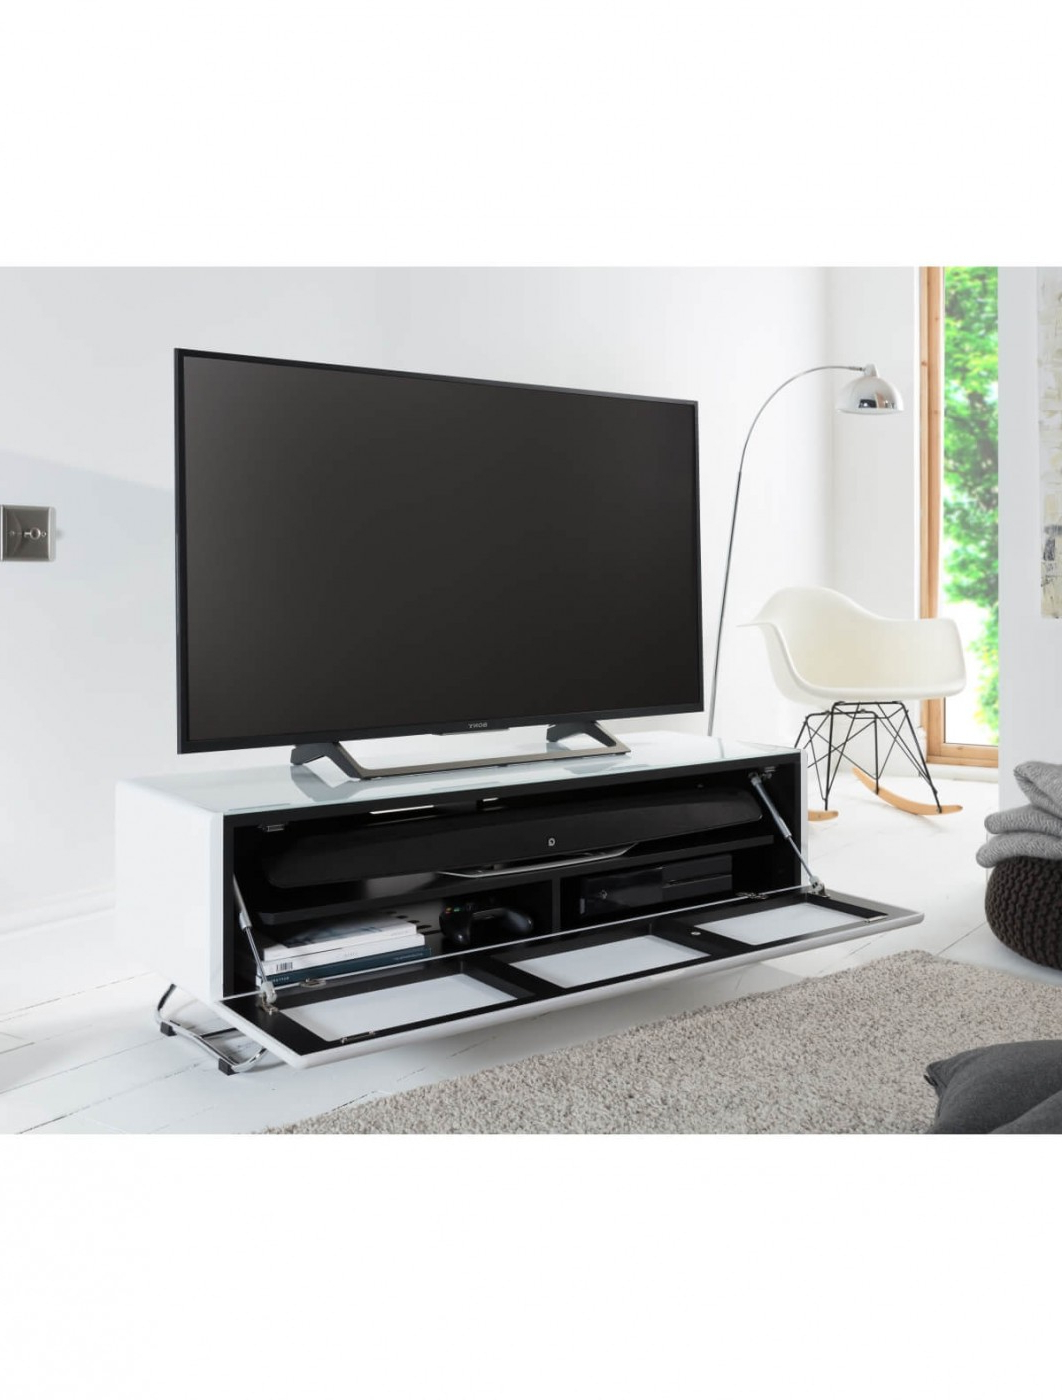 Tv Stand White Chromium Concept 1200mm Cro2 1200cpt Wh Pertaining To Chromium Tv Stands (View 7 of 20)